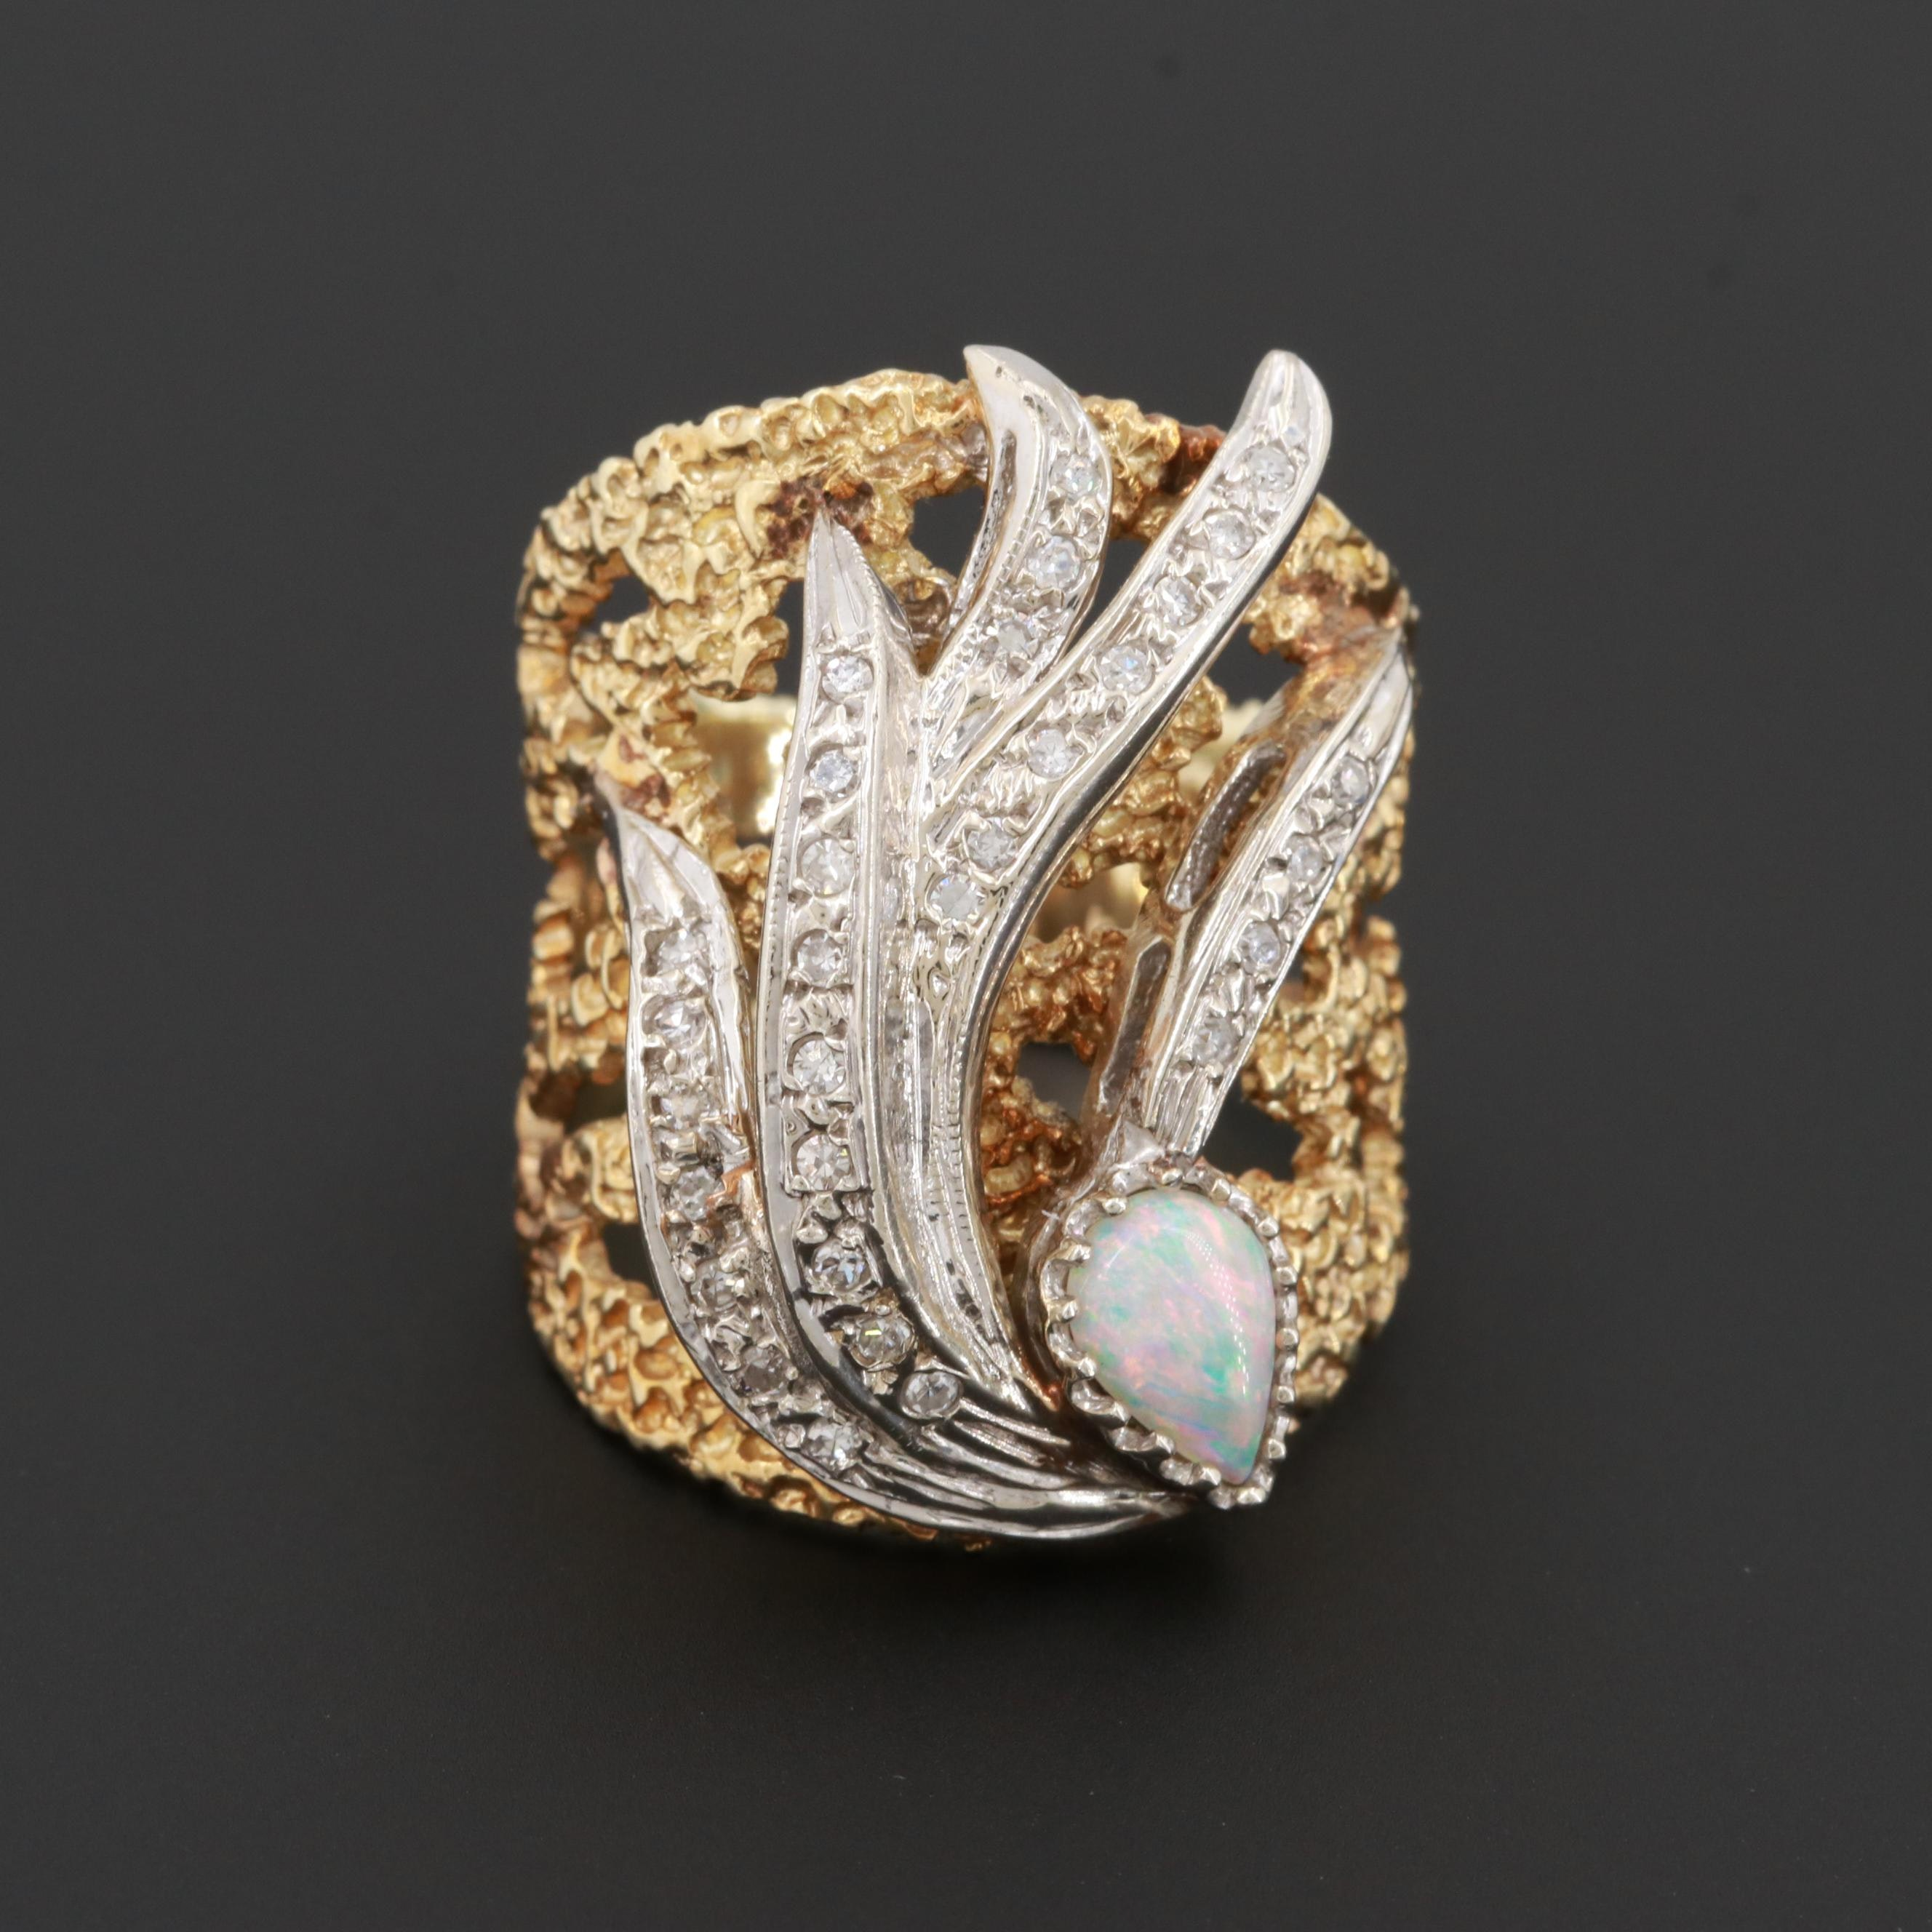 14K Yellow Gold Opal and Diamond Ring with White Gold Feathers